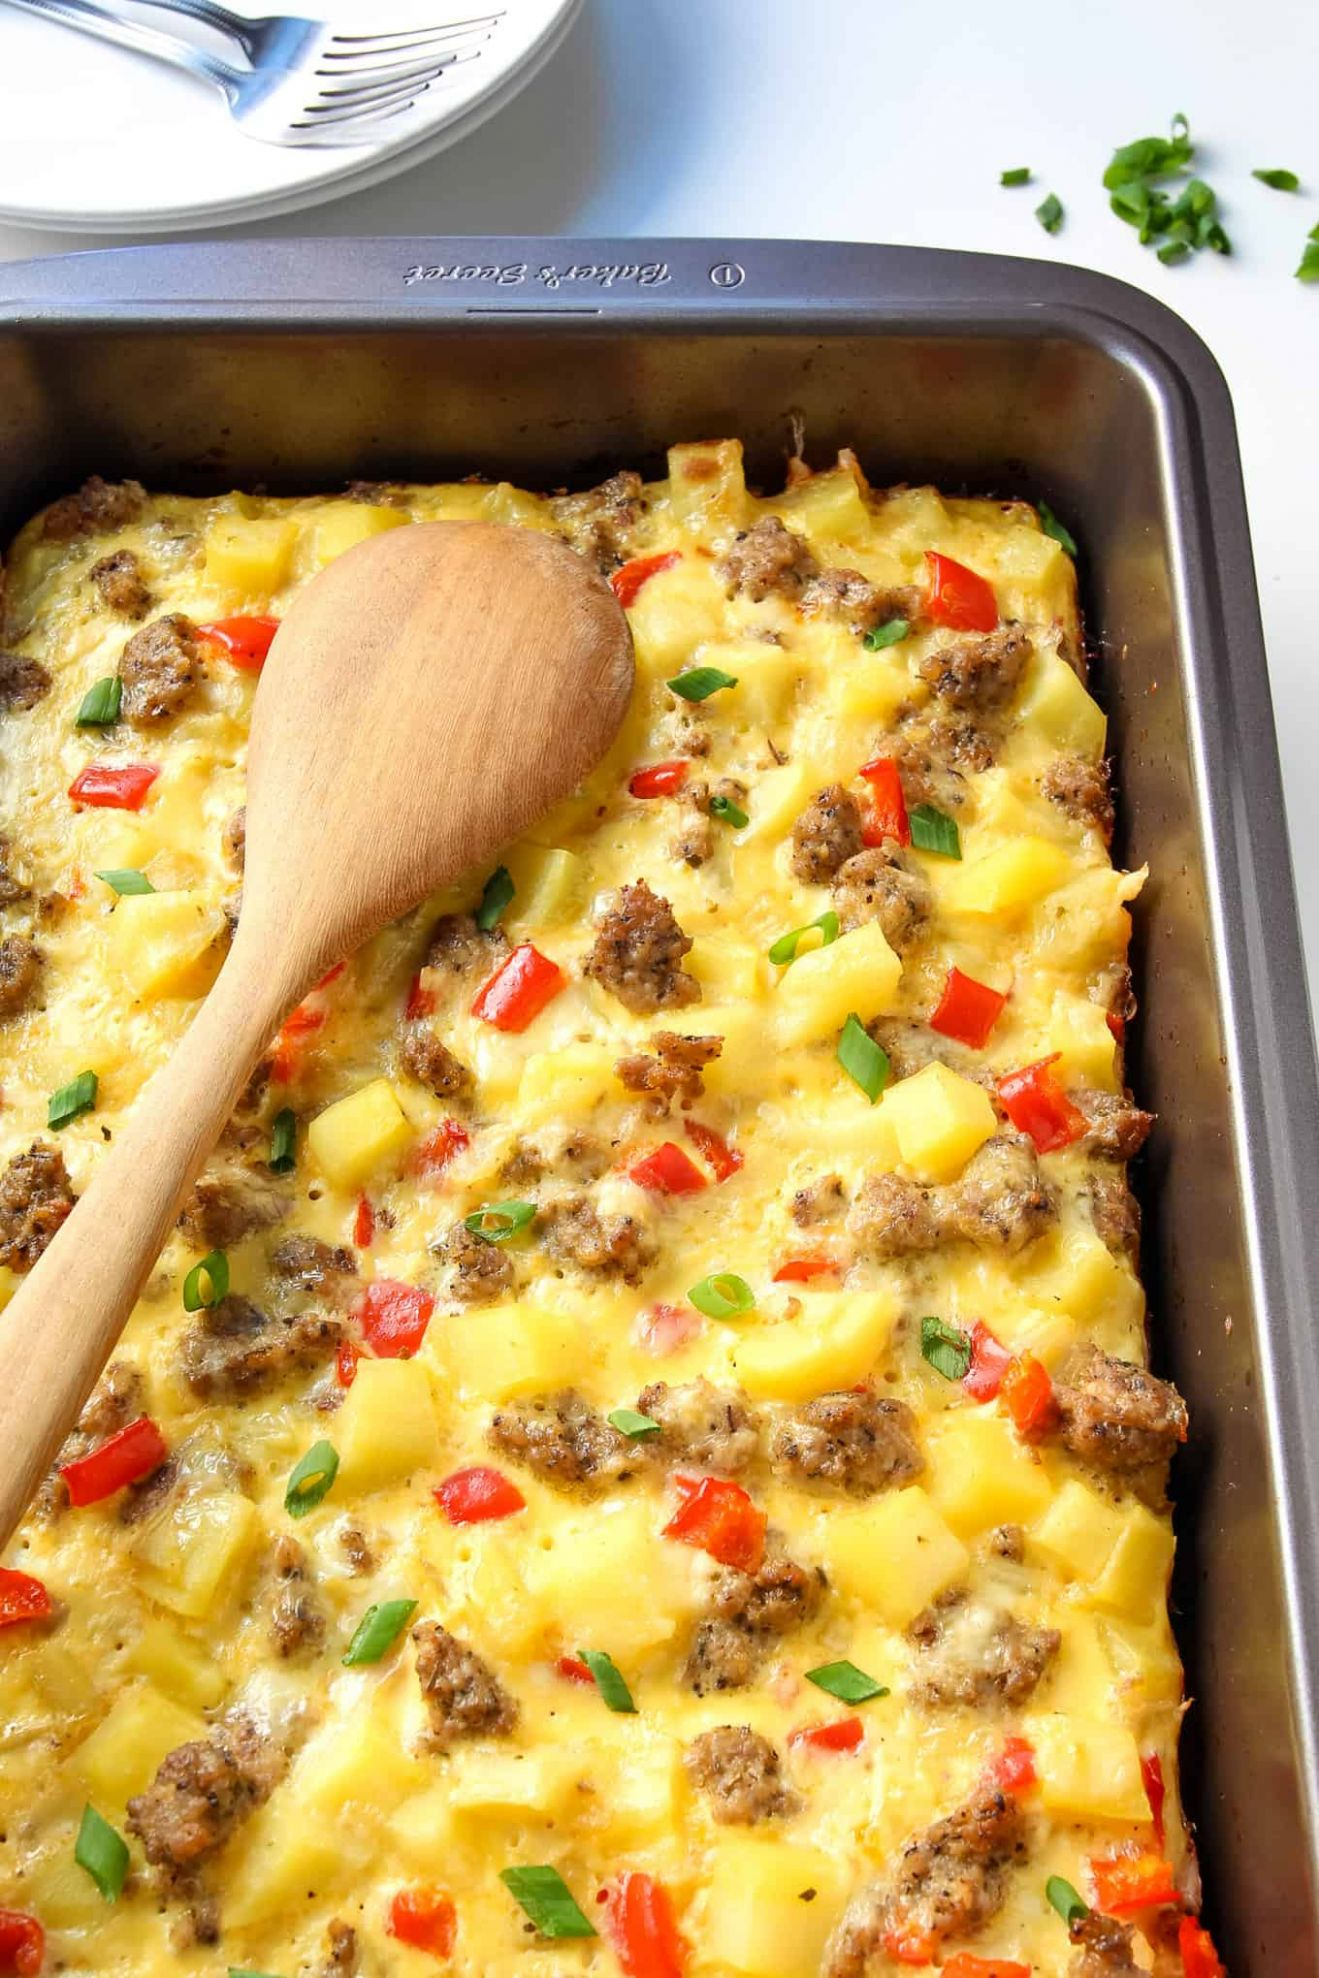 Breakfast Casserole with Eggs, Potatoes and Sausage - Recipe Egg Sausage Casserole